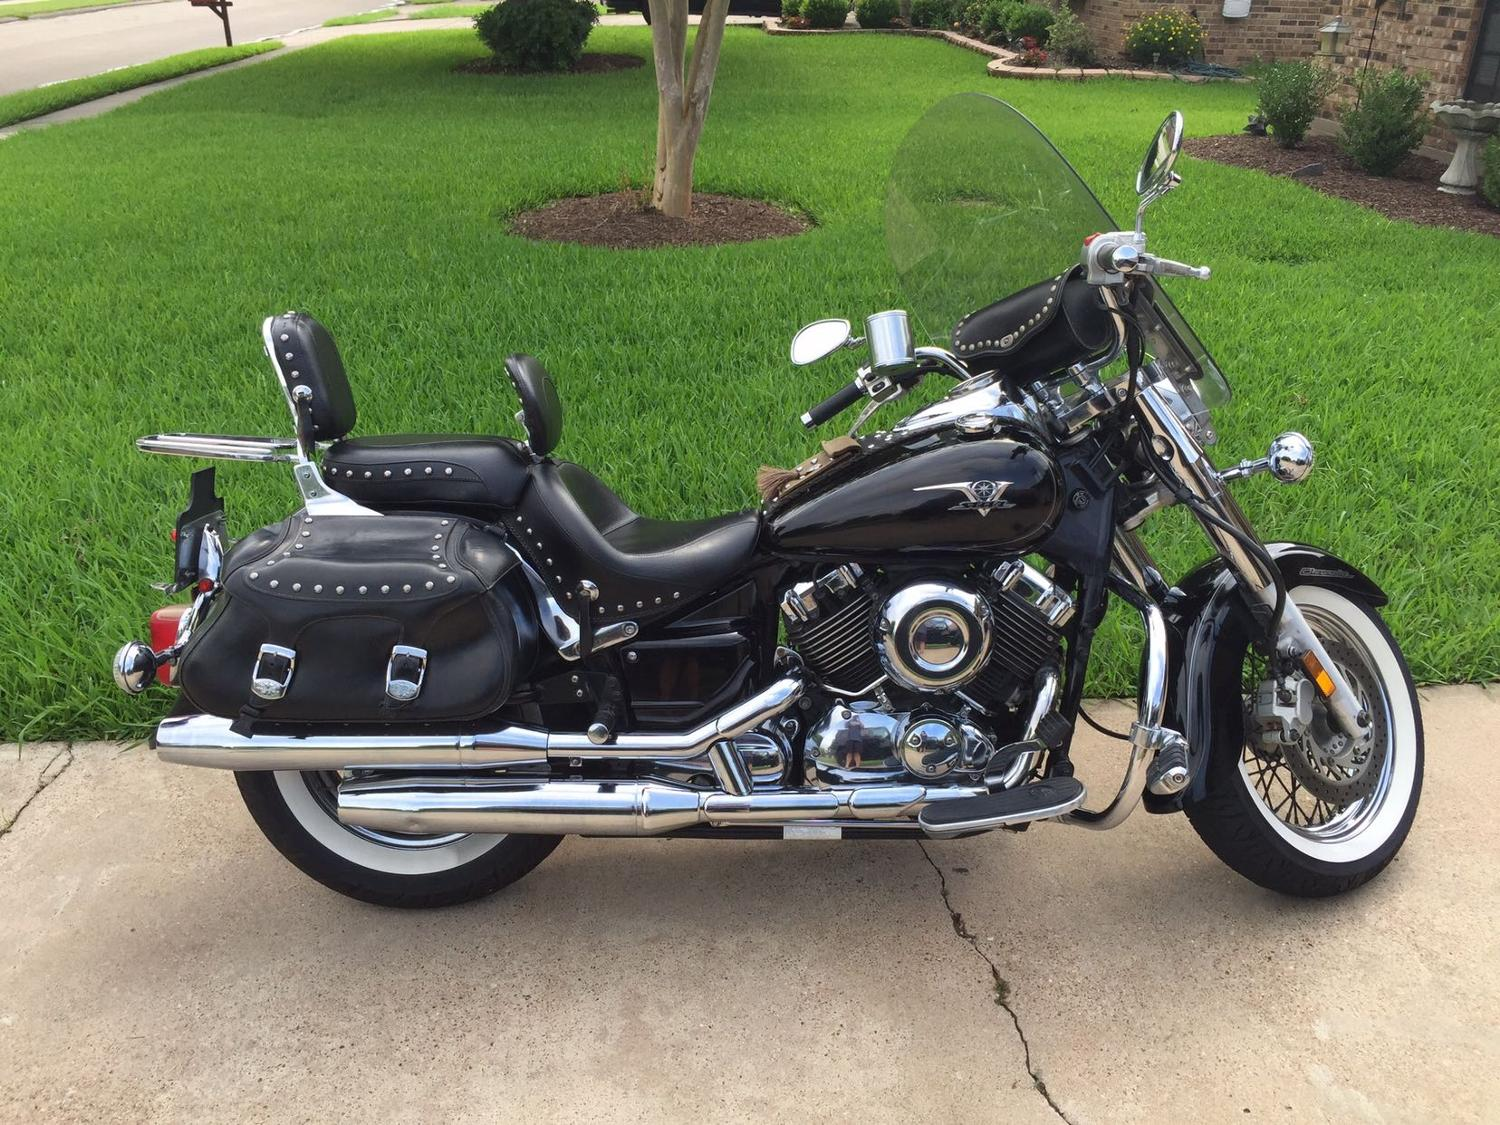 best 2007 yamaha v star 650 for sale in brazoria county texas for 2017. Black Bedroom Furniture Sets. Home Design Ideas